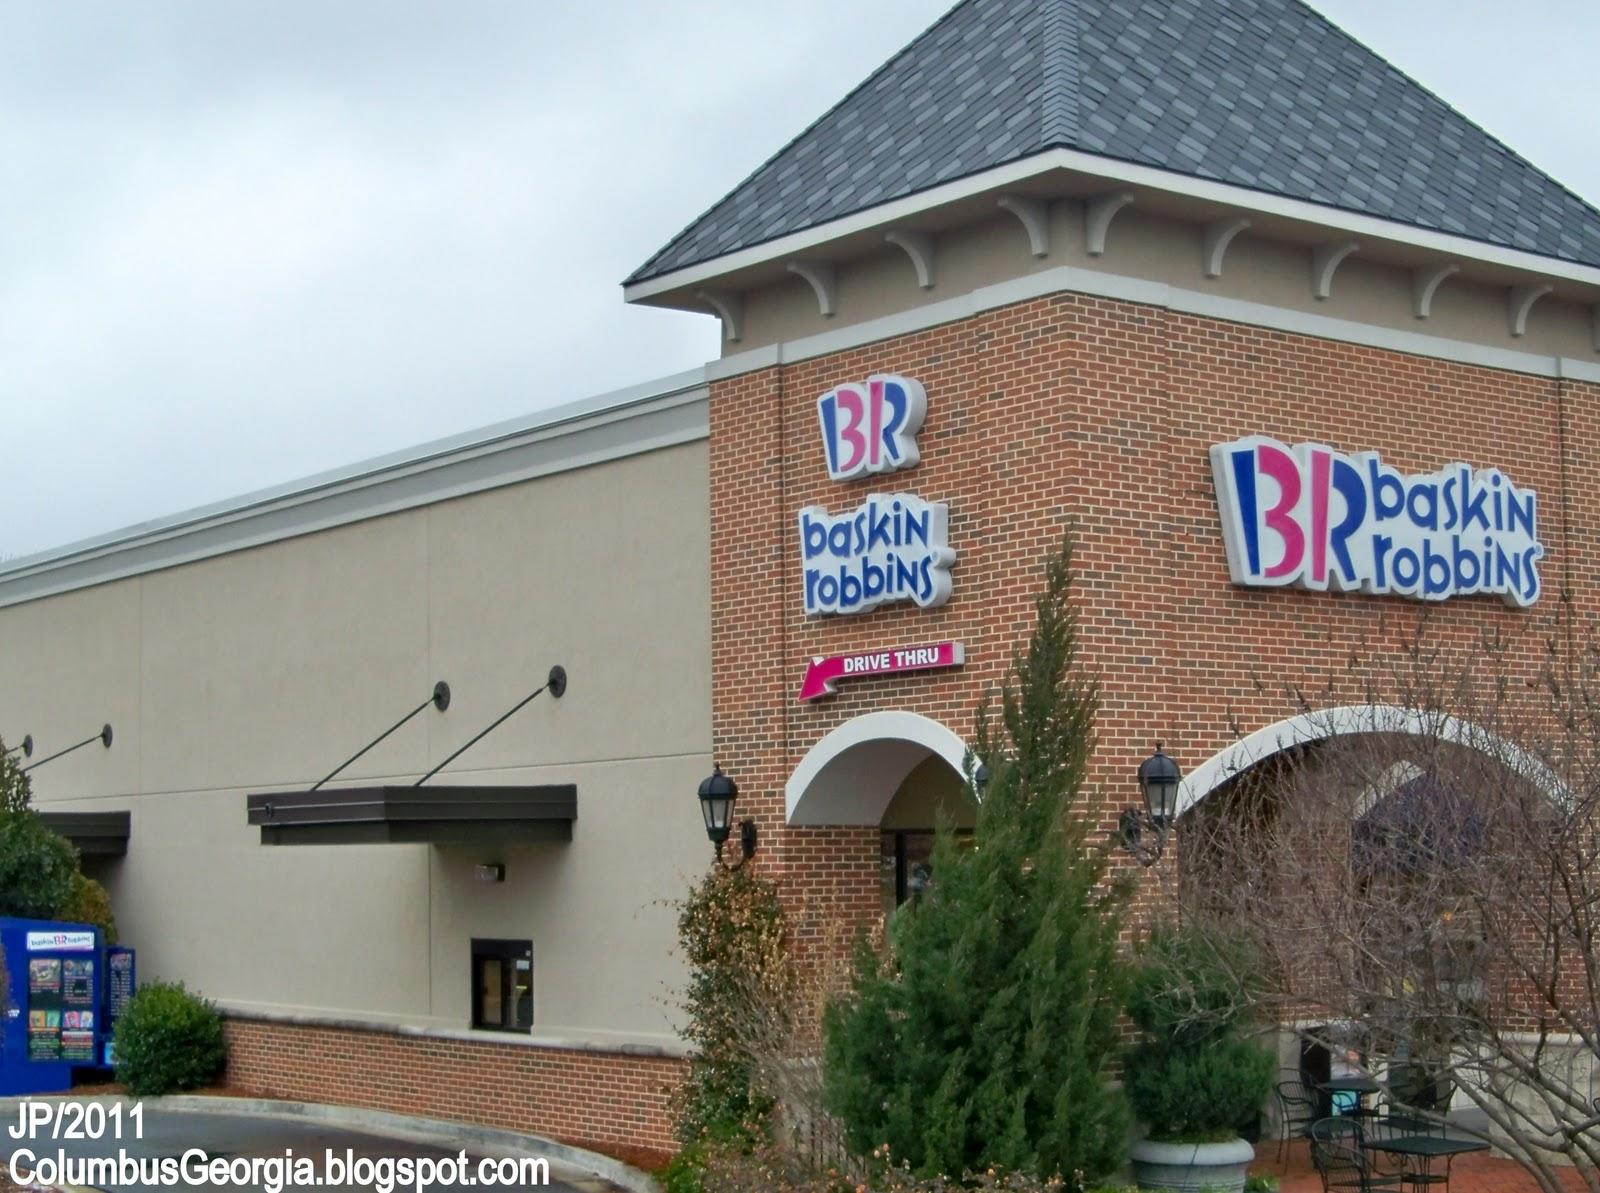 baskin-robins-ice-cream-columbus-georgia-airport-thruway-baskin-robins-ice-cream-parlor-store-muscogee-county-columbus-ga